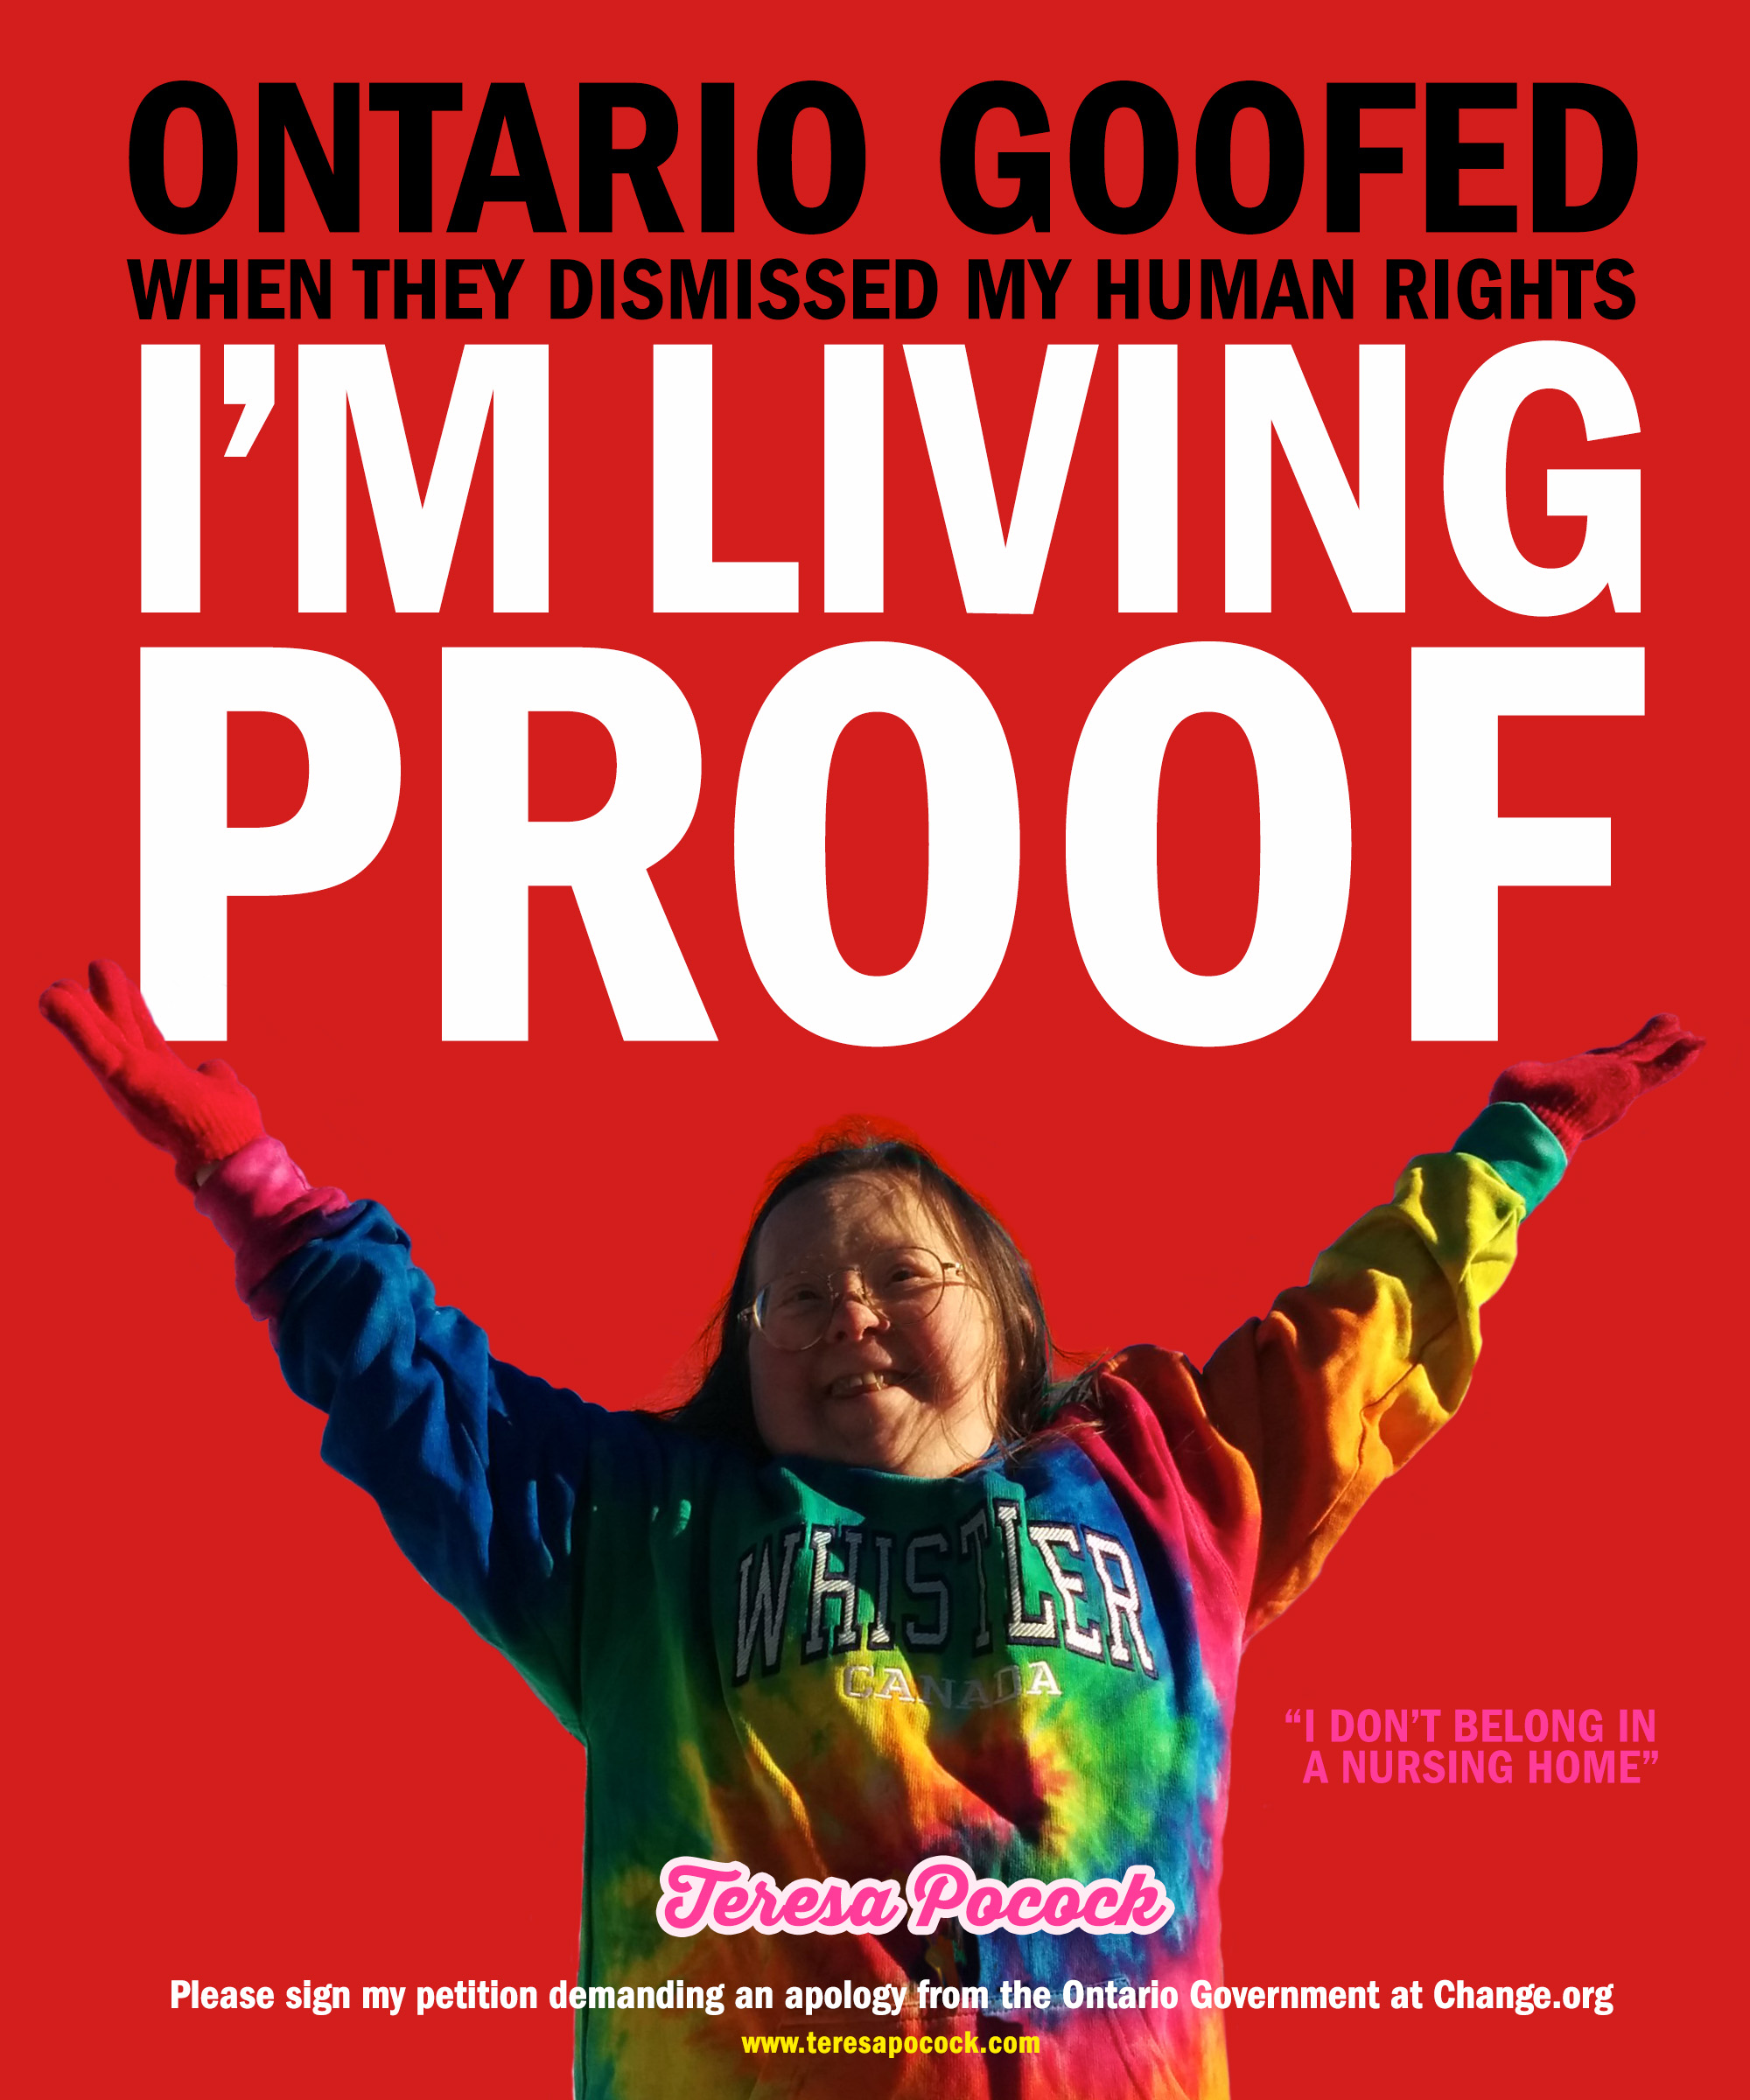 I'm Living Proof that Ontario Goofed When They Disabled my Human Rights